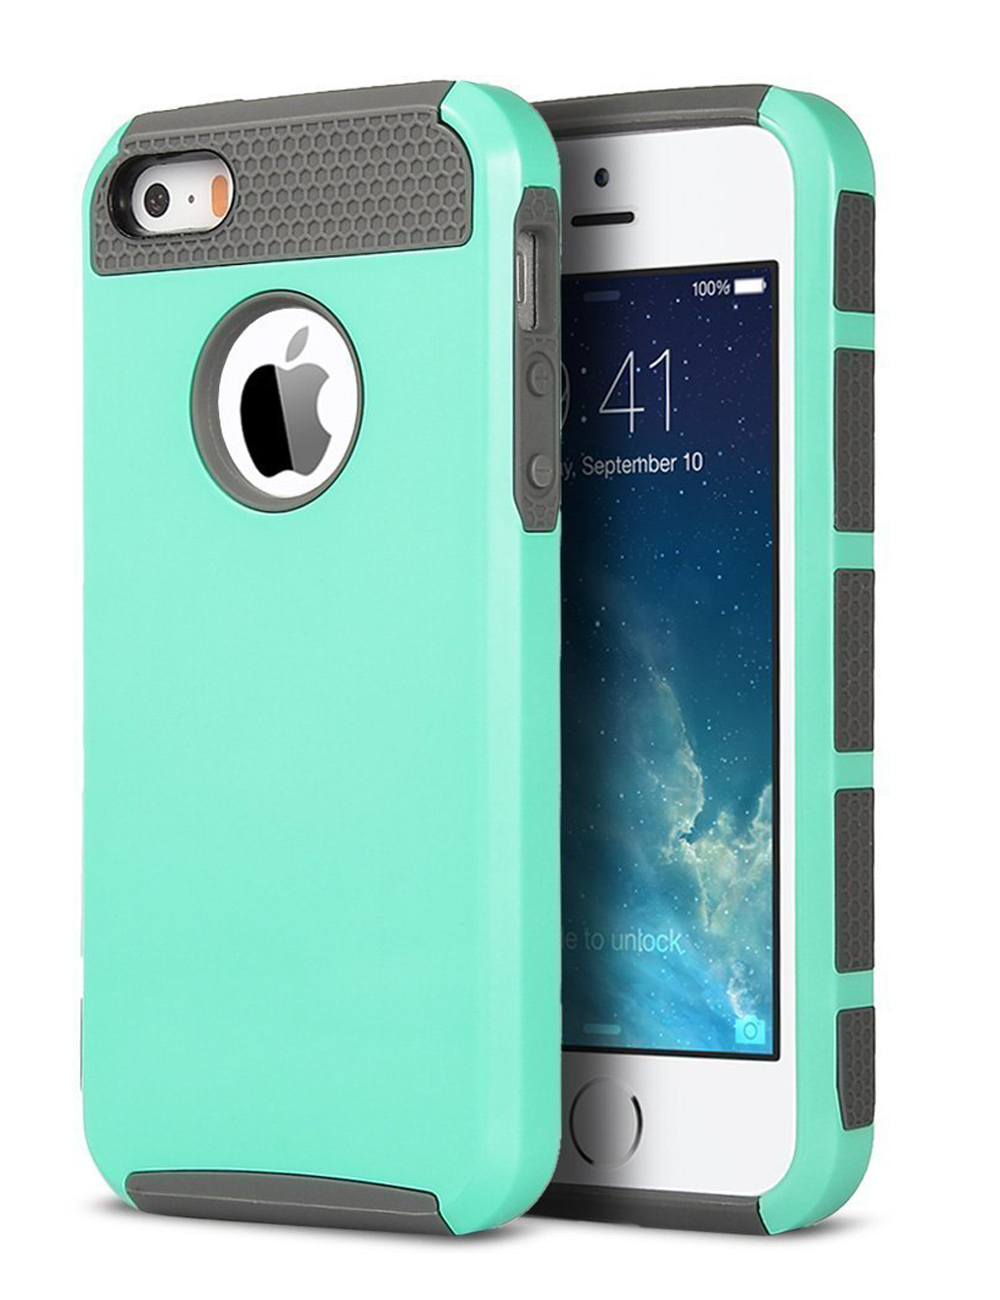 iphone 5s hard case shockproof rugged hybrid rubber cover for apple 14809